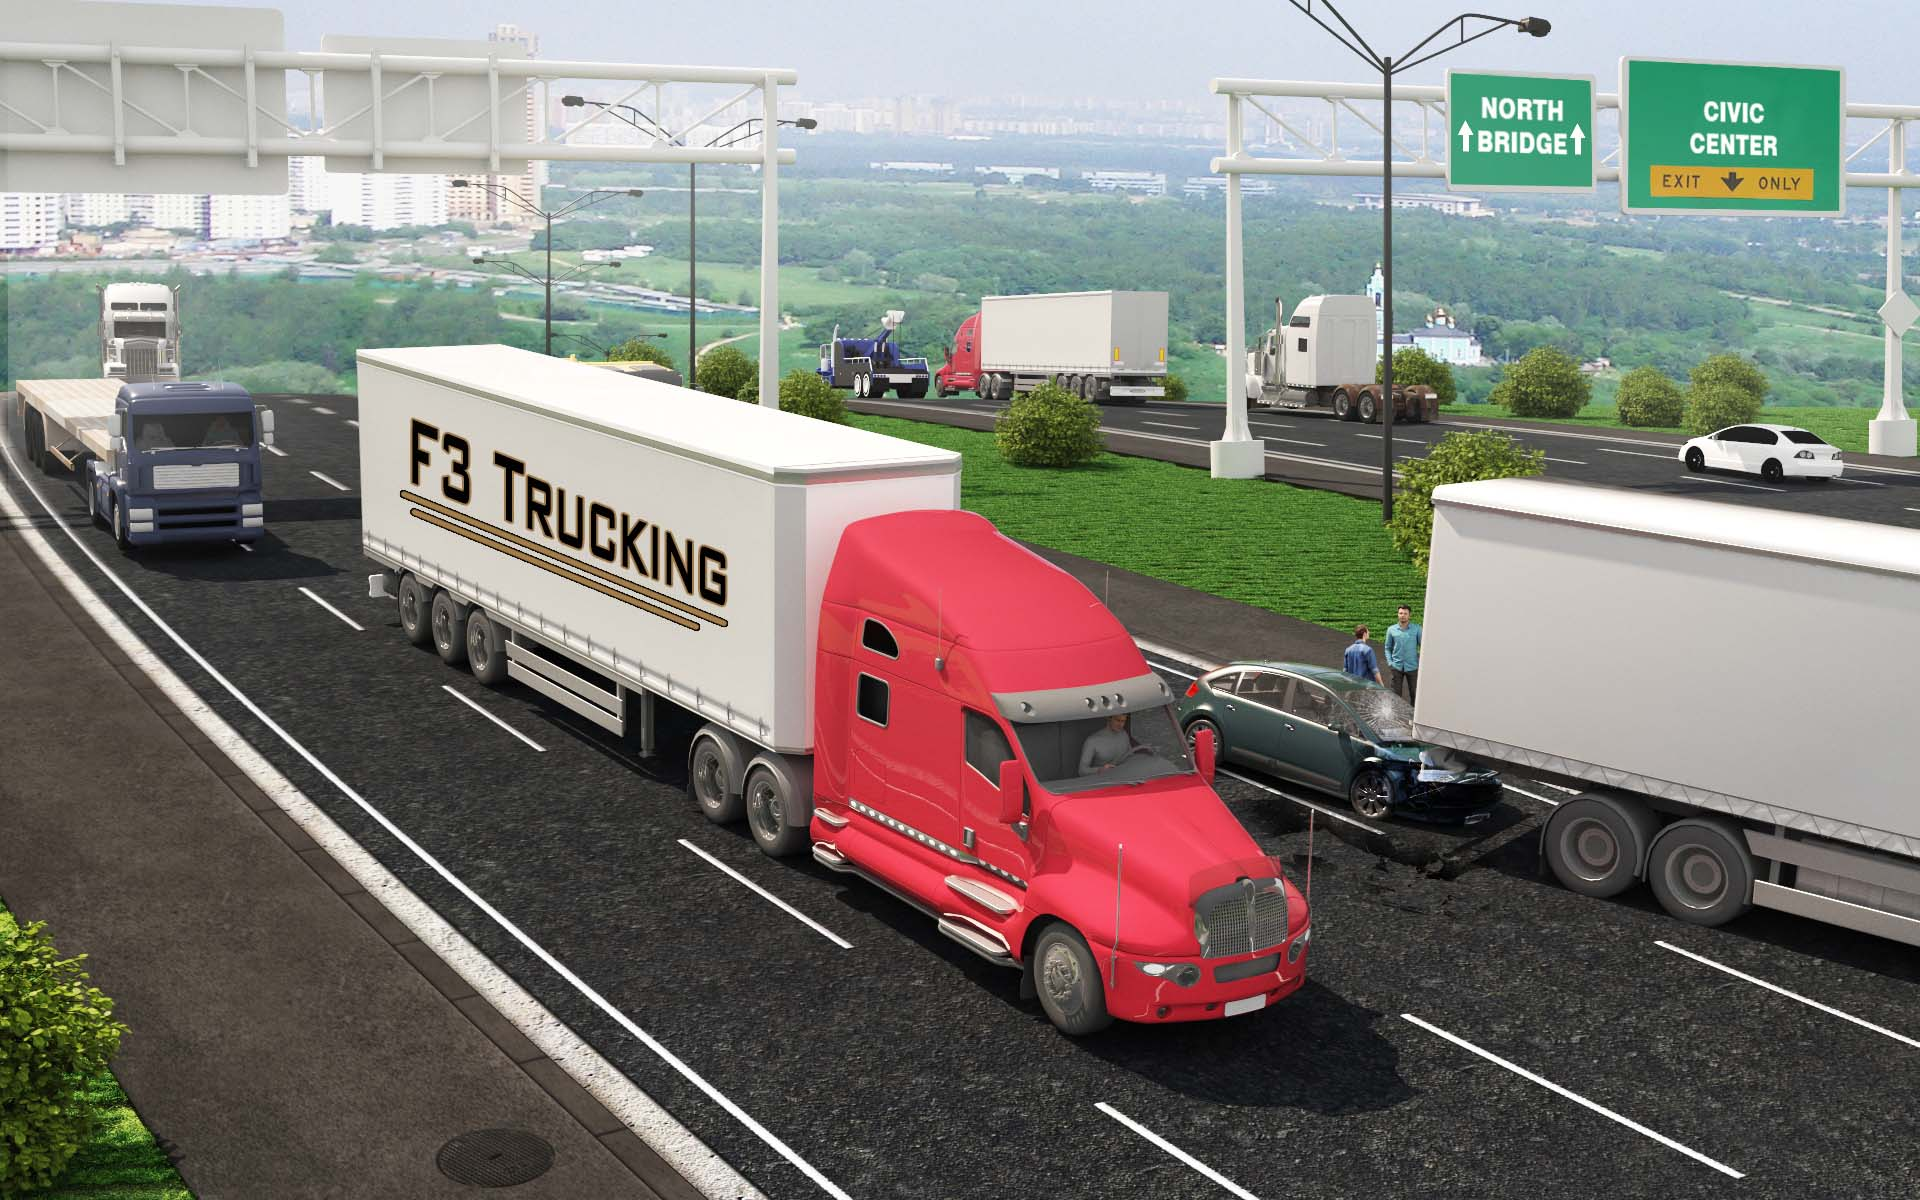 Trucking - Clickable Coverage